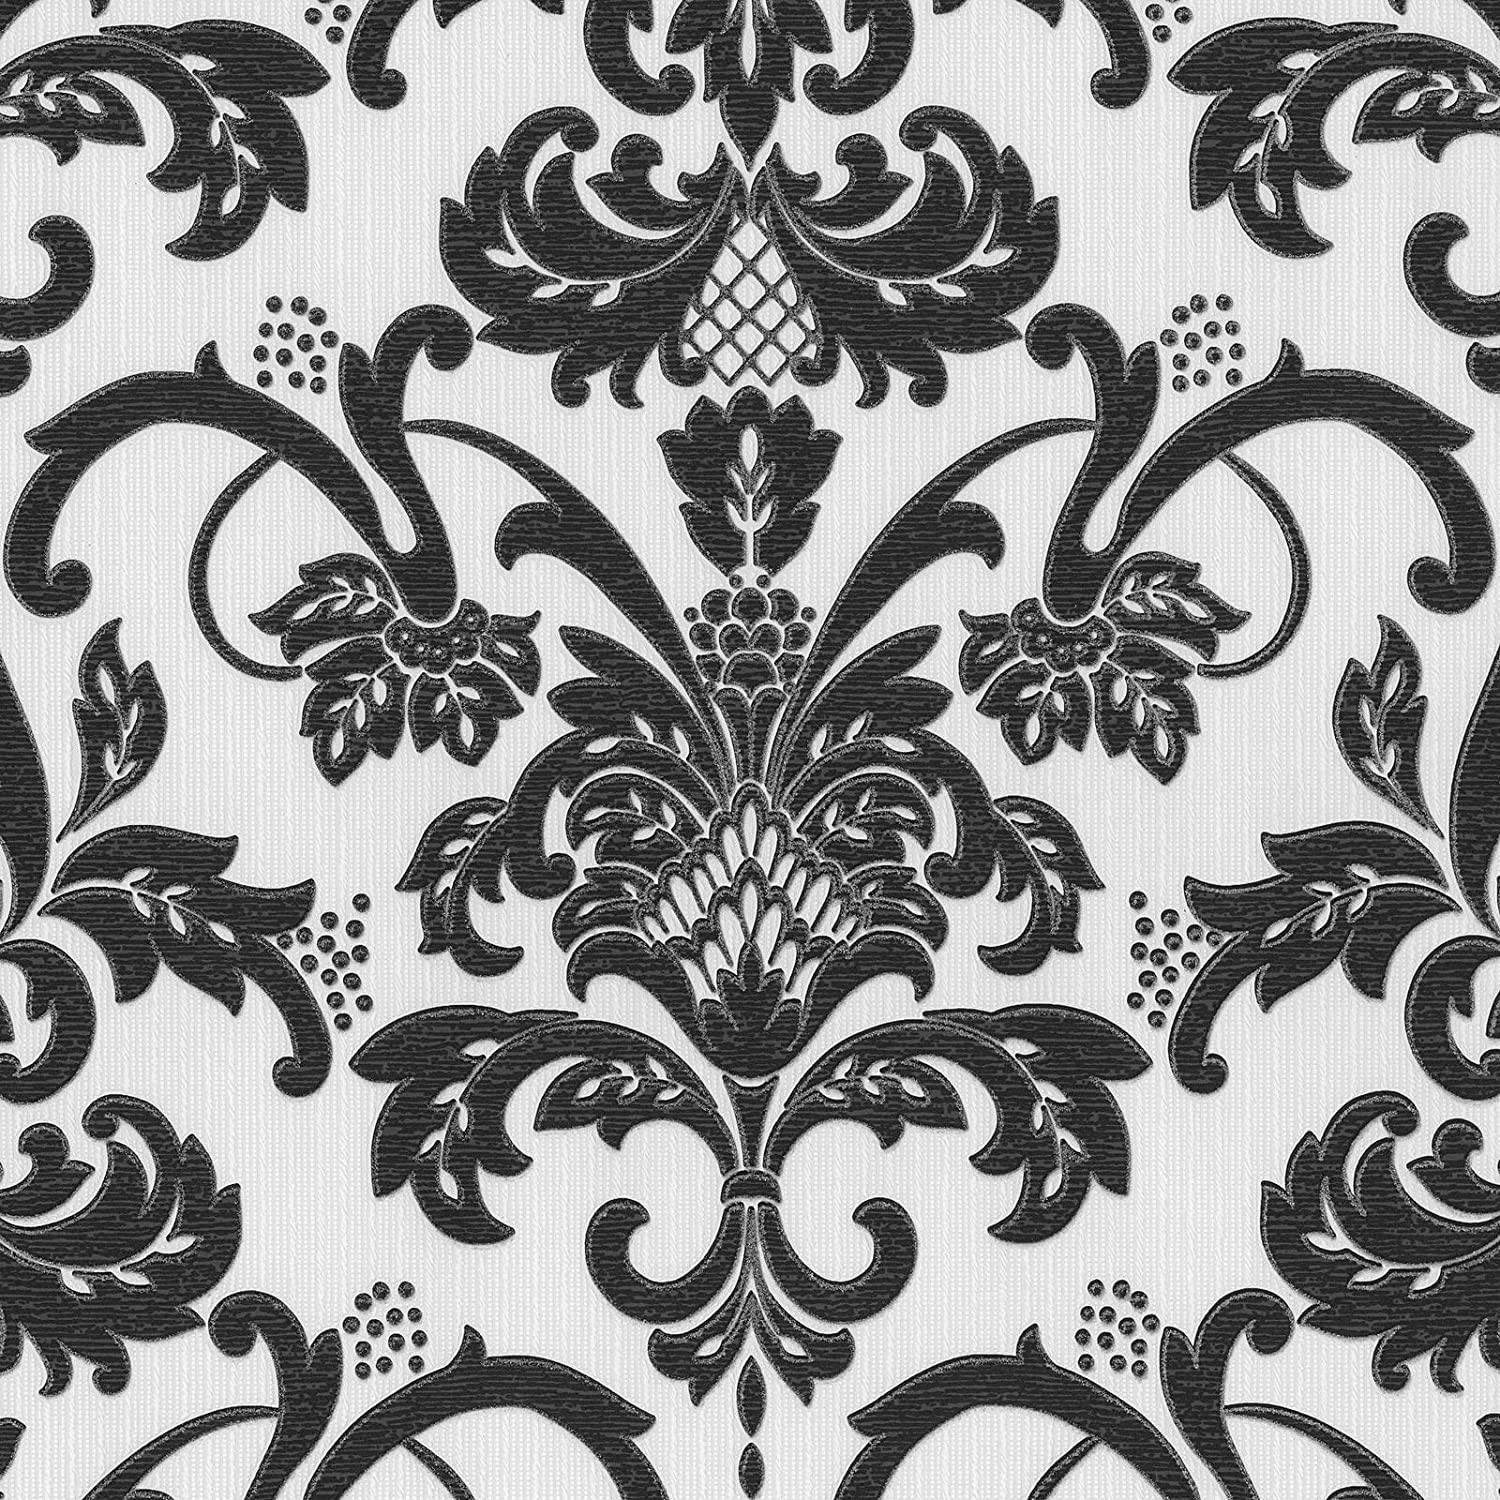 Claremont Black And White Damask Wallpaper Glitter Traditional Textured Washable 18132 20 Amazon Co Uk Diy Tools